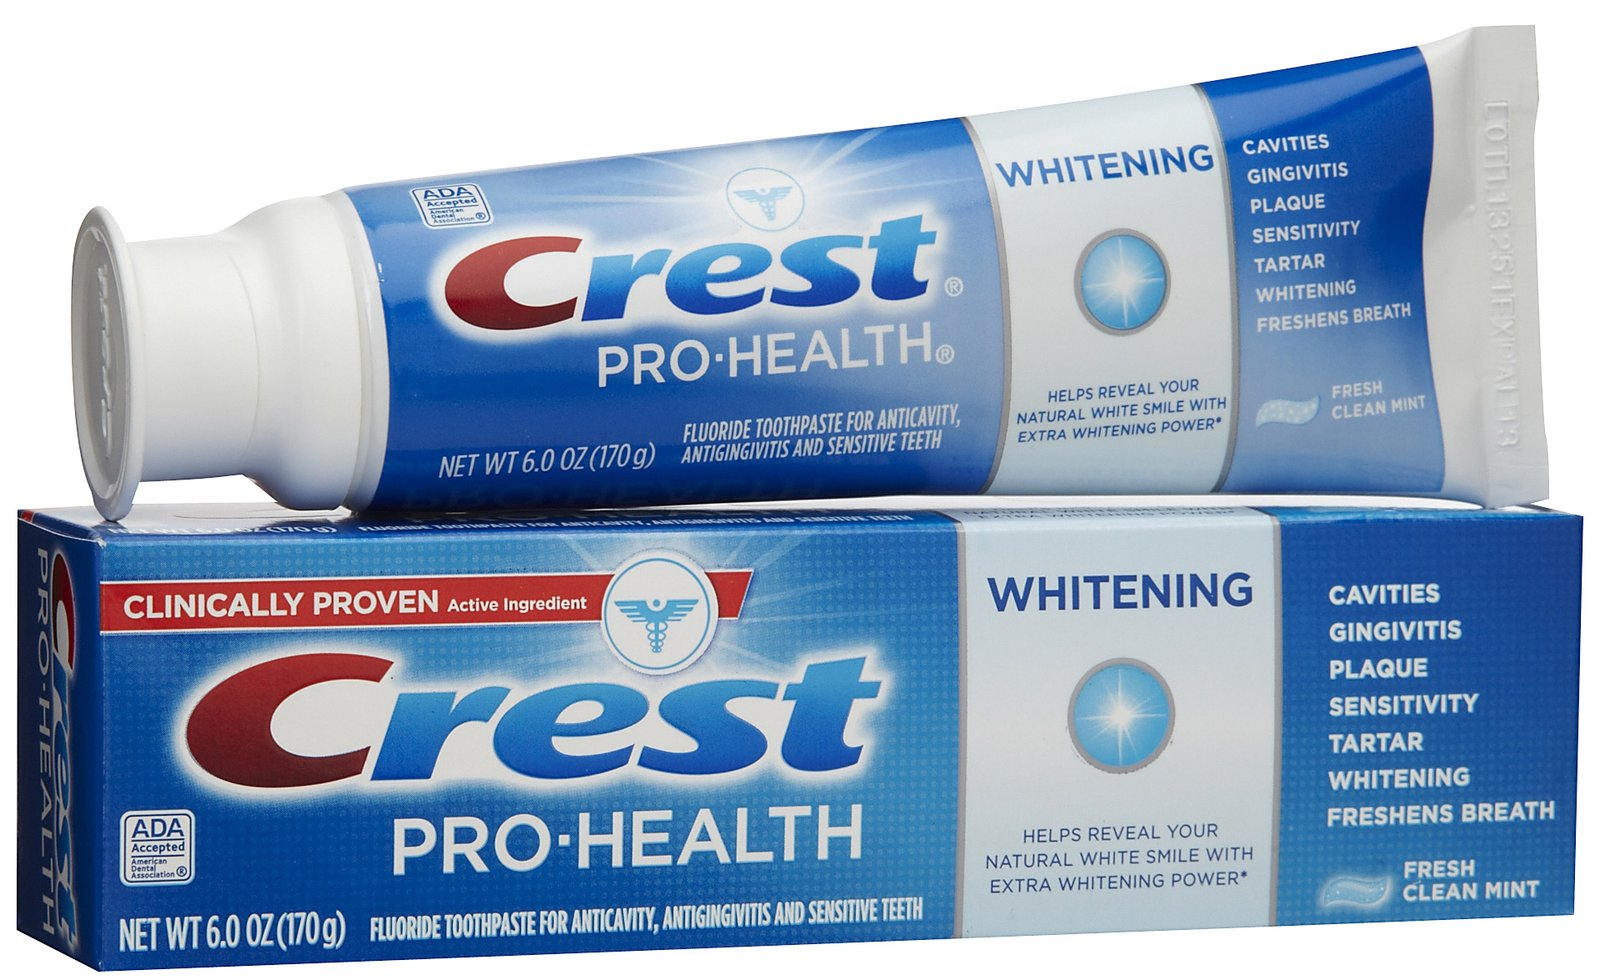 Crest Pro-Health uses dentist-inspired solutions for a stronger, healthier mouth.